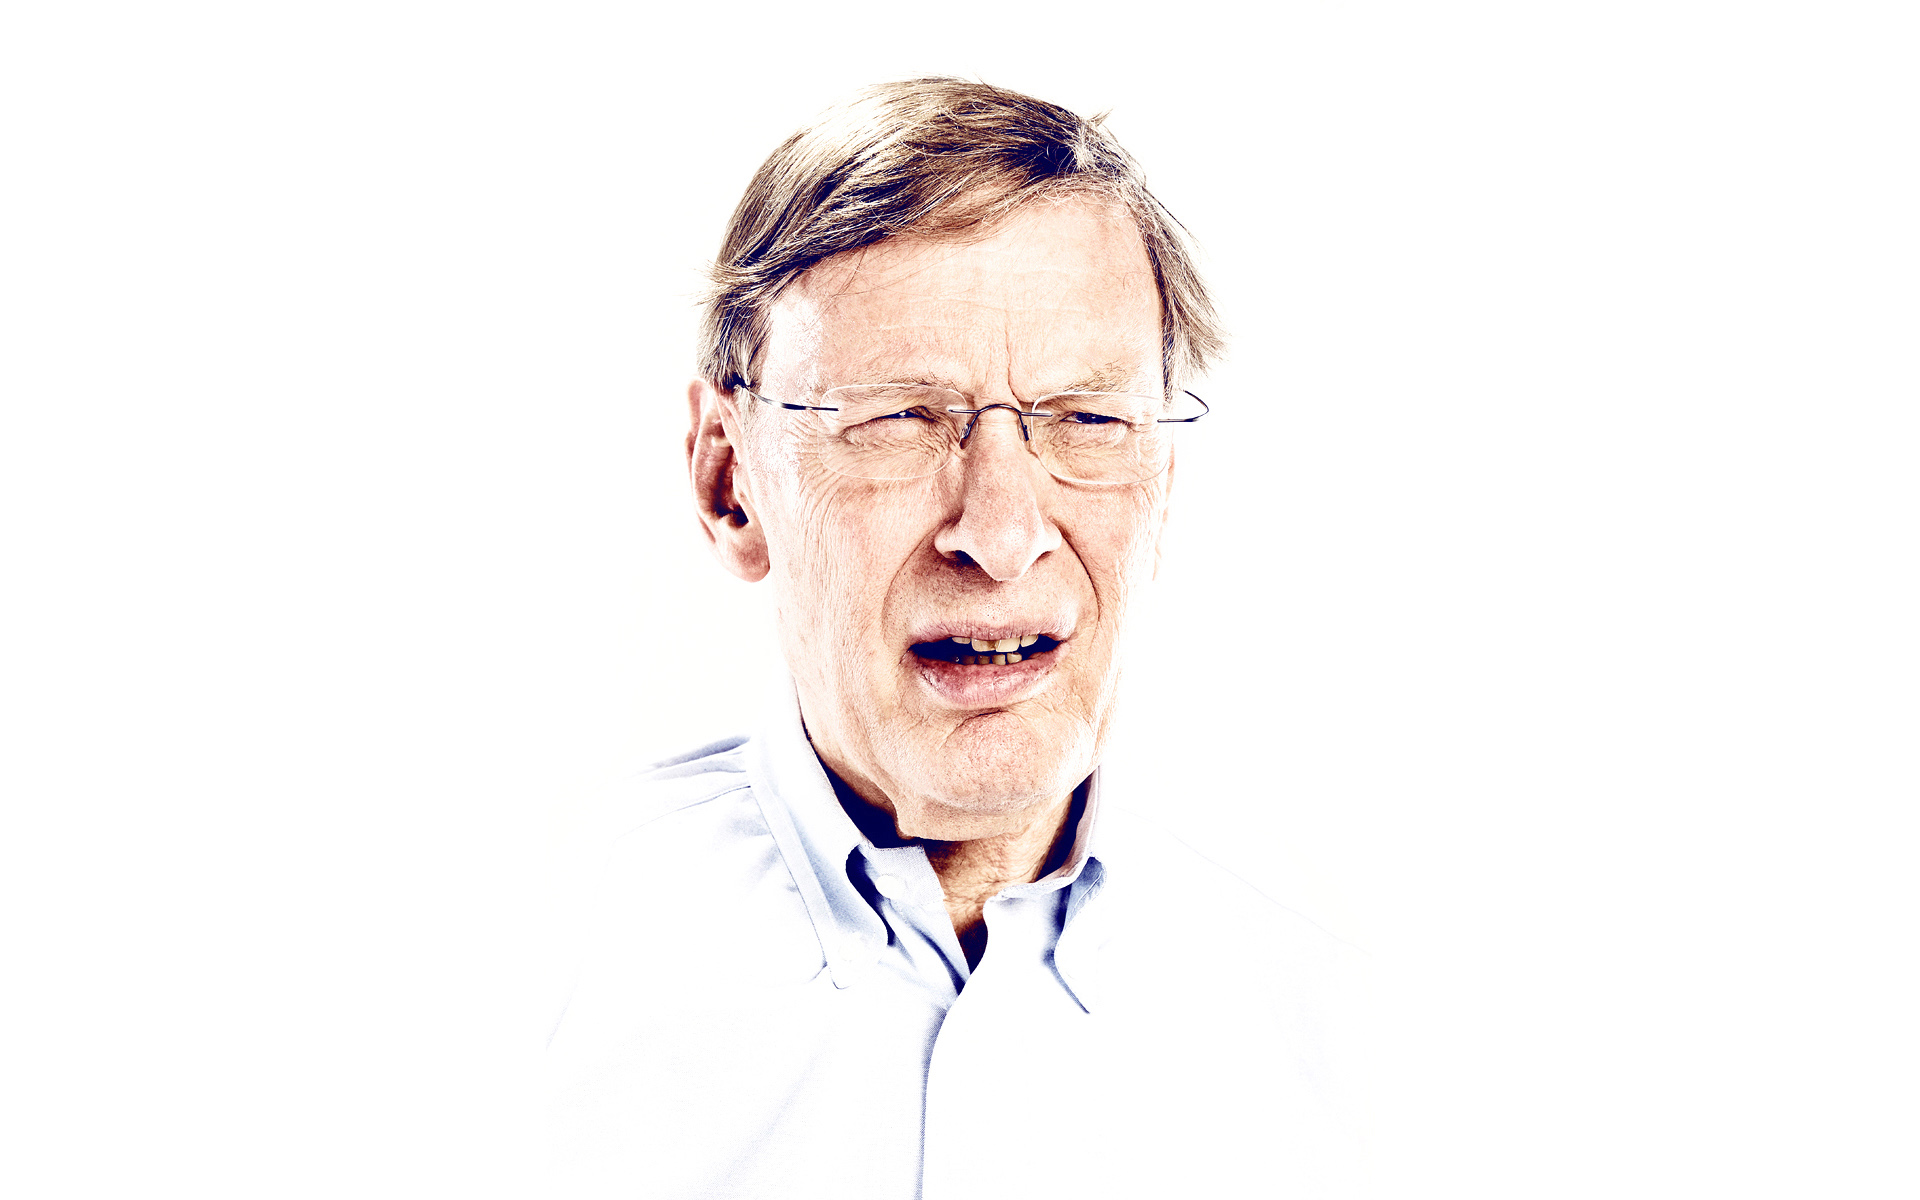 Bud Selig by Los Angeles Celebrity Photographer